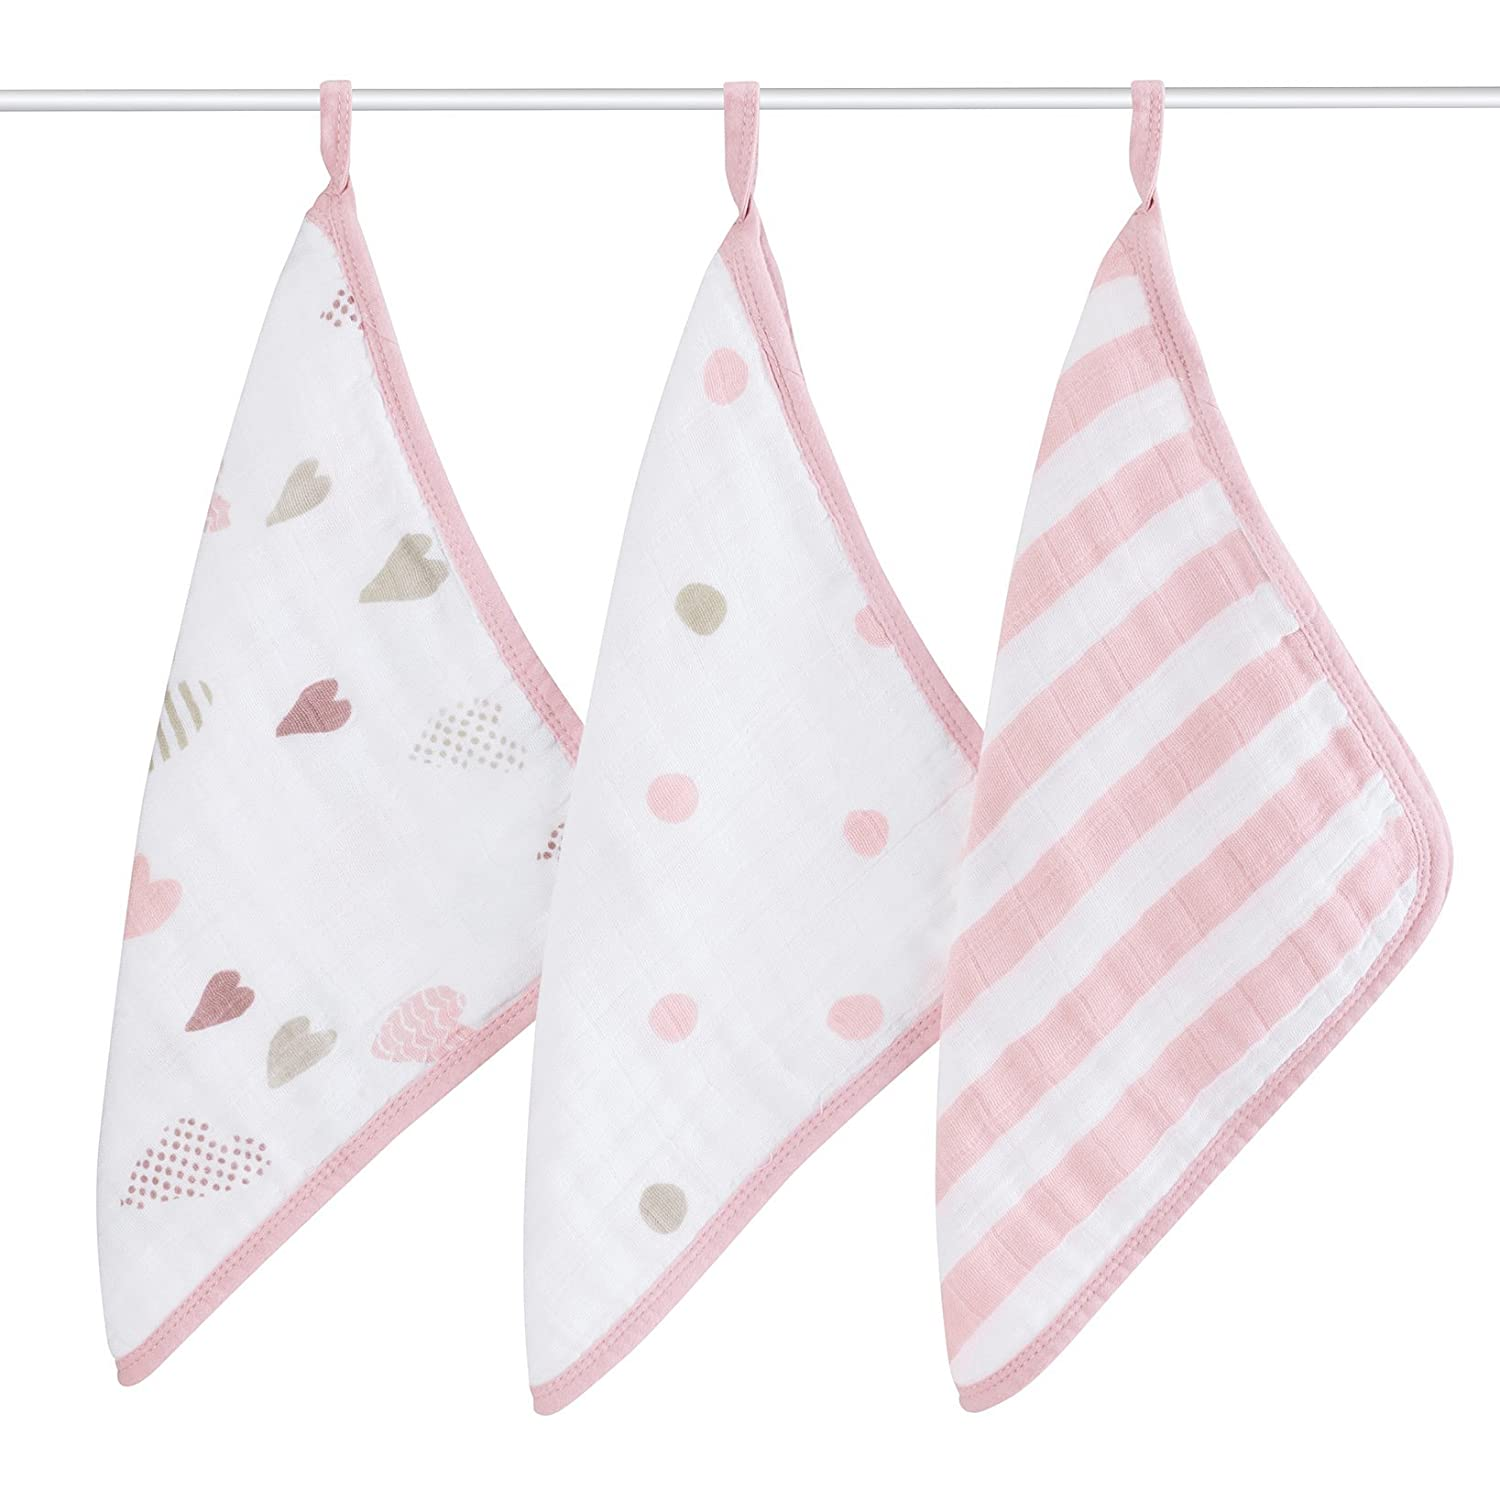 aden + anais Washcloth Set, Heartbreaker 3049F